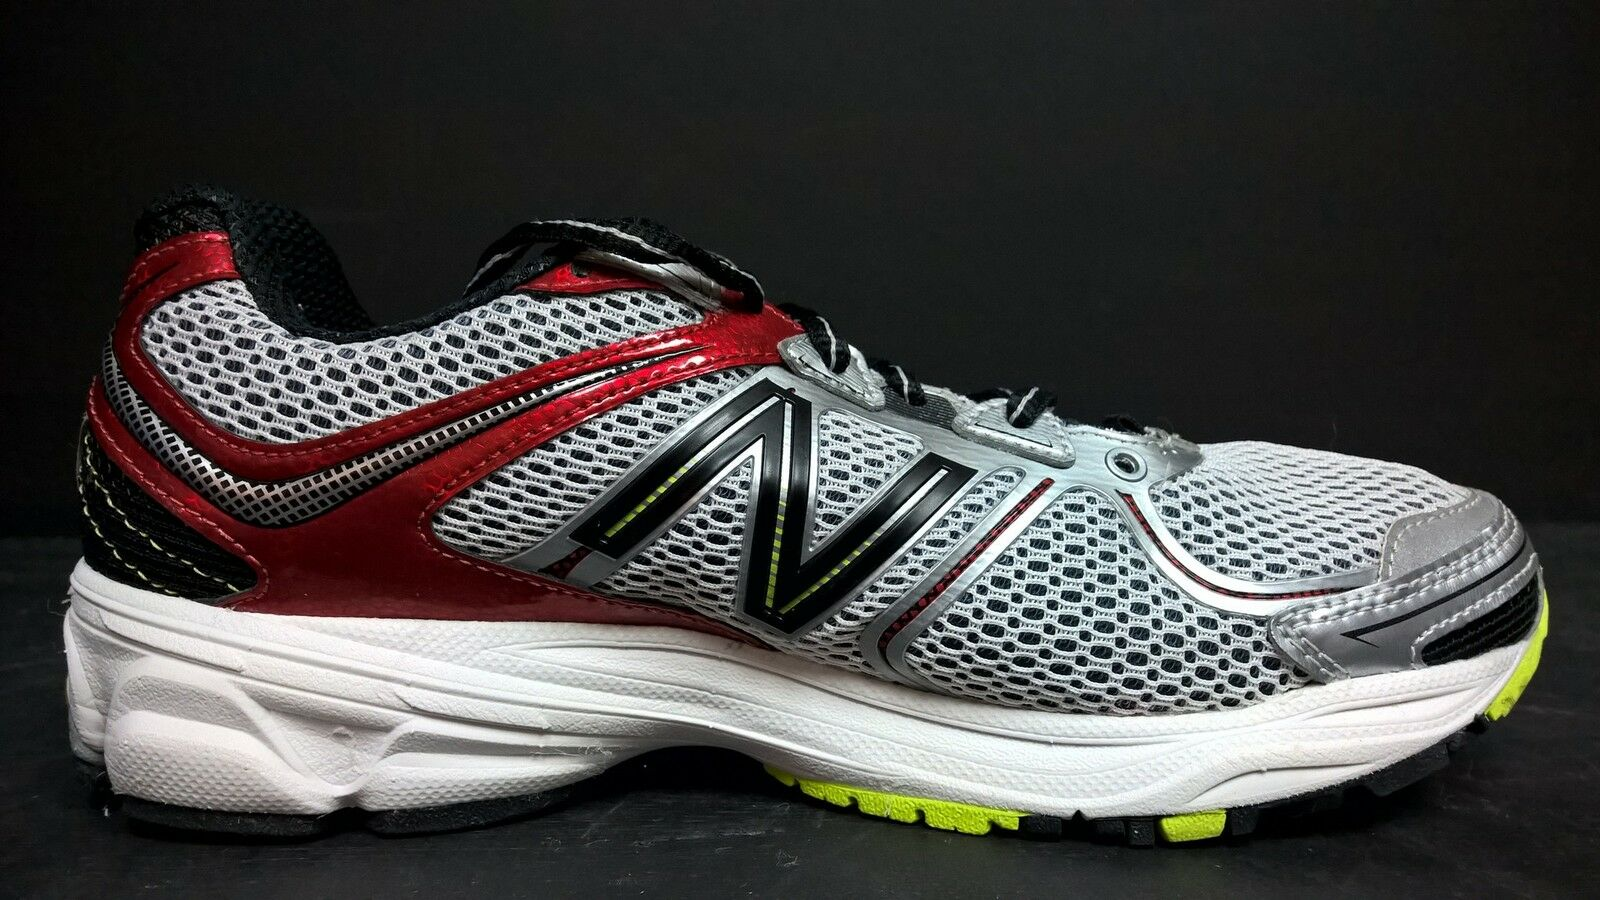 New Balance Men's Size 7 Running Shoes, M880SR2, Gray Red